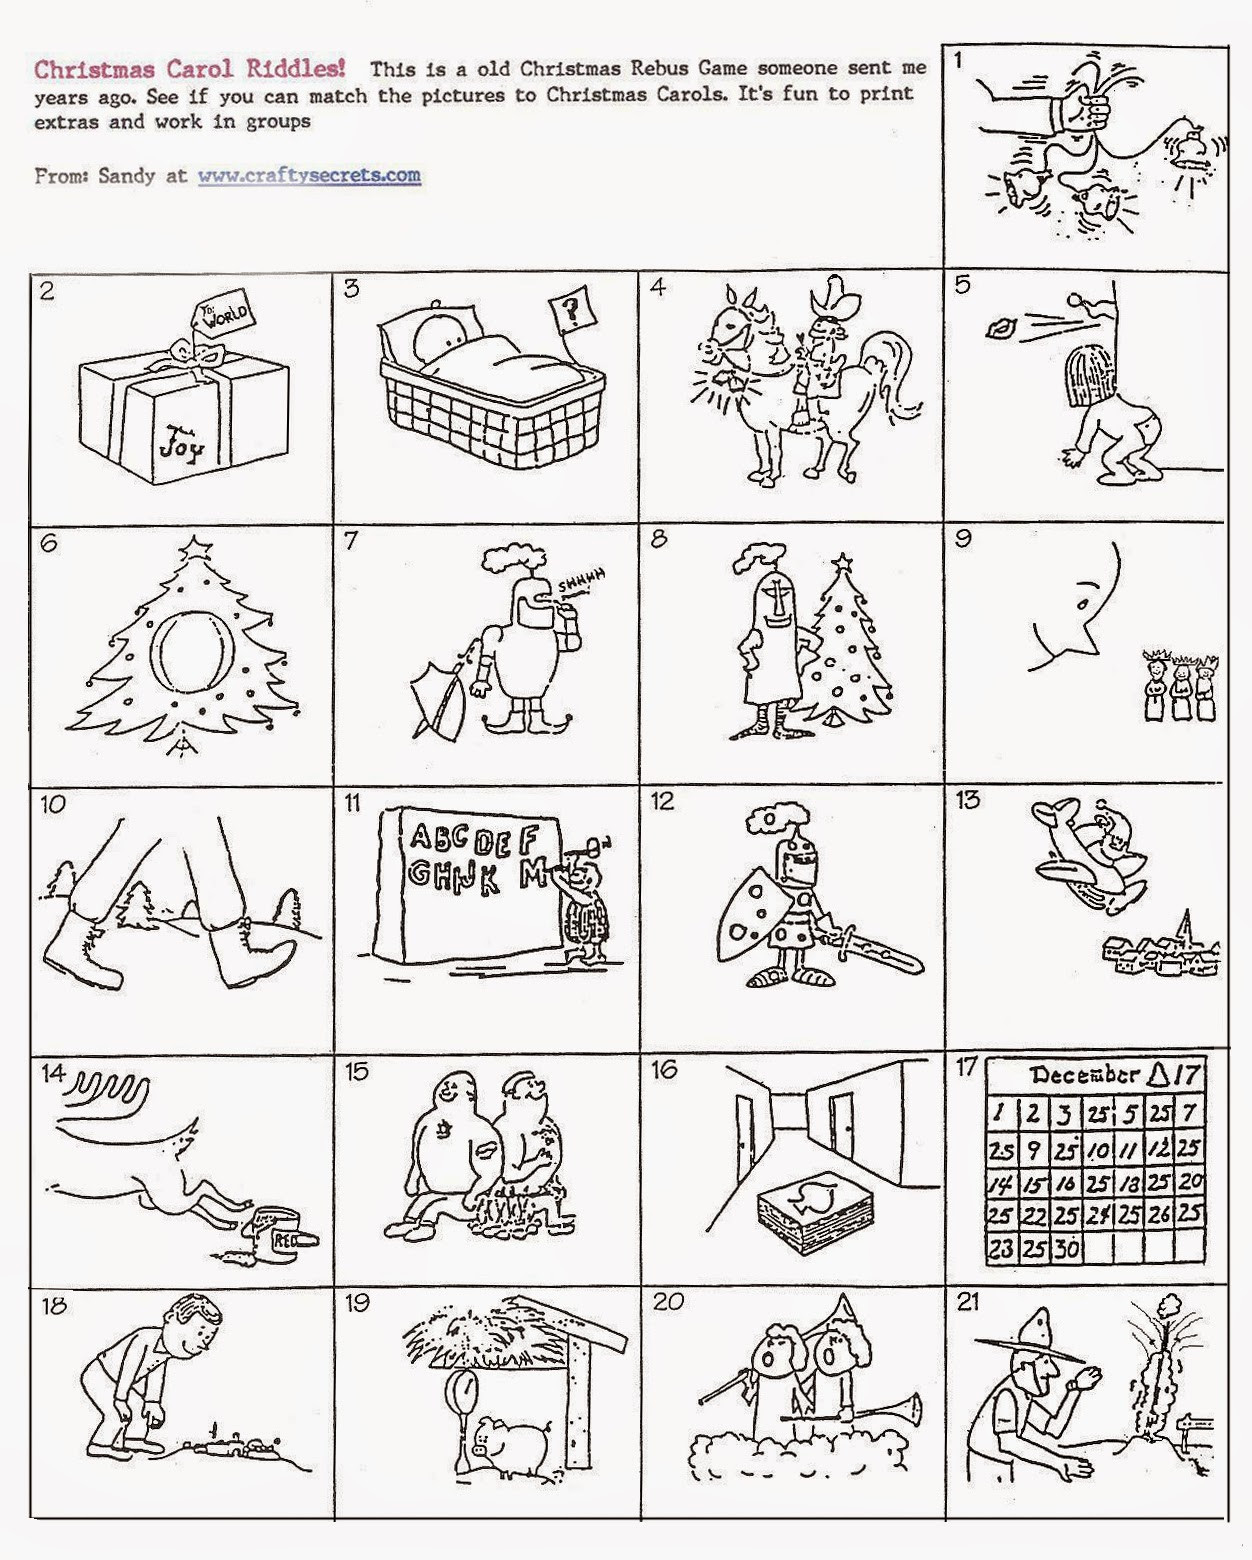 3rd Grade Brain Teasers Printable Math Worksheet Amazing Fun Worksheets for Grade January 3rd